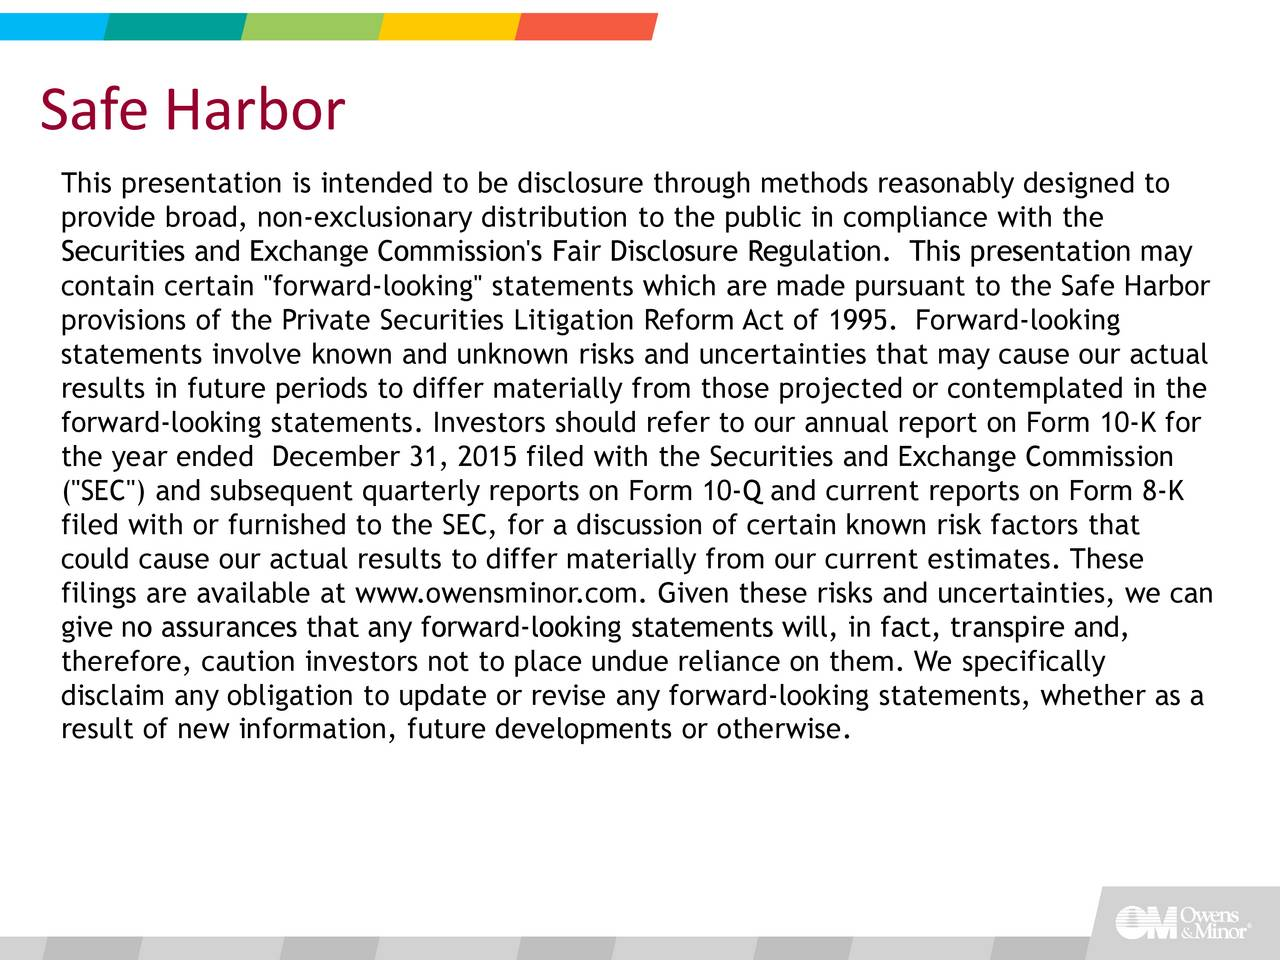 """This presentation is intended to be disclosure through methods reasonably designed to provide broad, nonexclusionary distribution to the public in compliance with the Securities and Exchange Commission's Fair Disclosure Regulation. This presentation may contain certain ''forwardlooking'' statements which are made pursuant to the Safe Harbor provisions of the Private Securities Litigation Reform Act of 1995. Forwardlooking statements involve known and unknown risks and uncertainties that may cause our actual results in future periods to differ materially from those projected or contemplated in the forwardlooking statements. Investors should refer to our annual report on Form 10K for the year ended December 31, 2015 filed with the Securities and Exchange Commission (""""SEC"""") and subsequent quarterly reports on Form 10Q and current reports on Form 8K filed with or furnished to the SEC, for a discussion of certain known risk factors that could cause our actual results to differ materially from our current estimates. These filings are available at www.owensminor.com. Given these risks and uncertainties, we can give no assurances that any forwardlooking statements will, in fact, transpire and, therefore, caution investors not to place undue reliance on them. We specifically disclaim any obligation to update or revise any forwardlooking statements, whether as a result of new information, future developments or otherwise."""